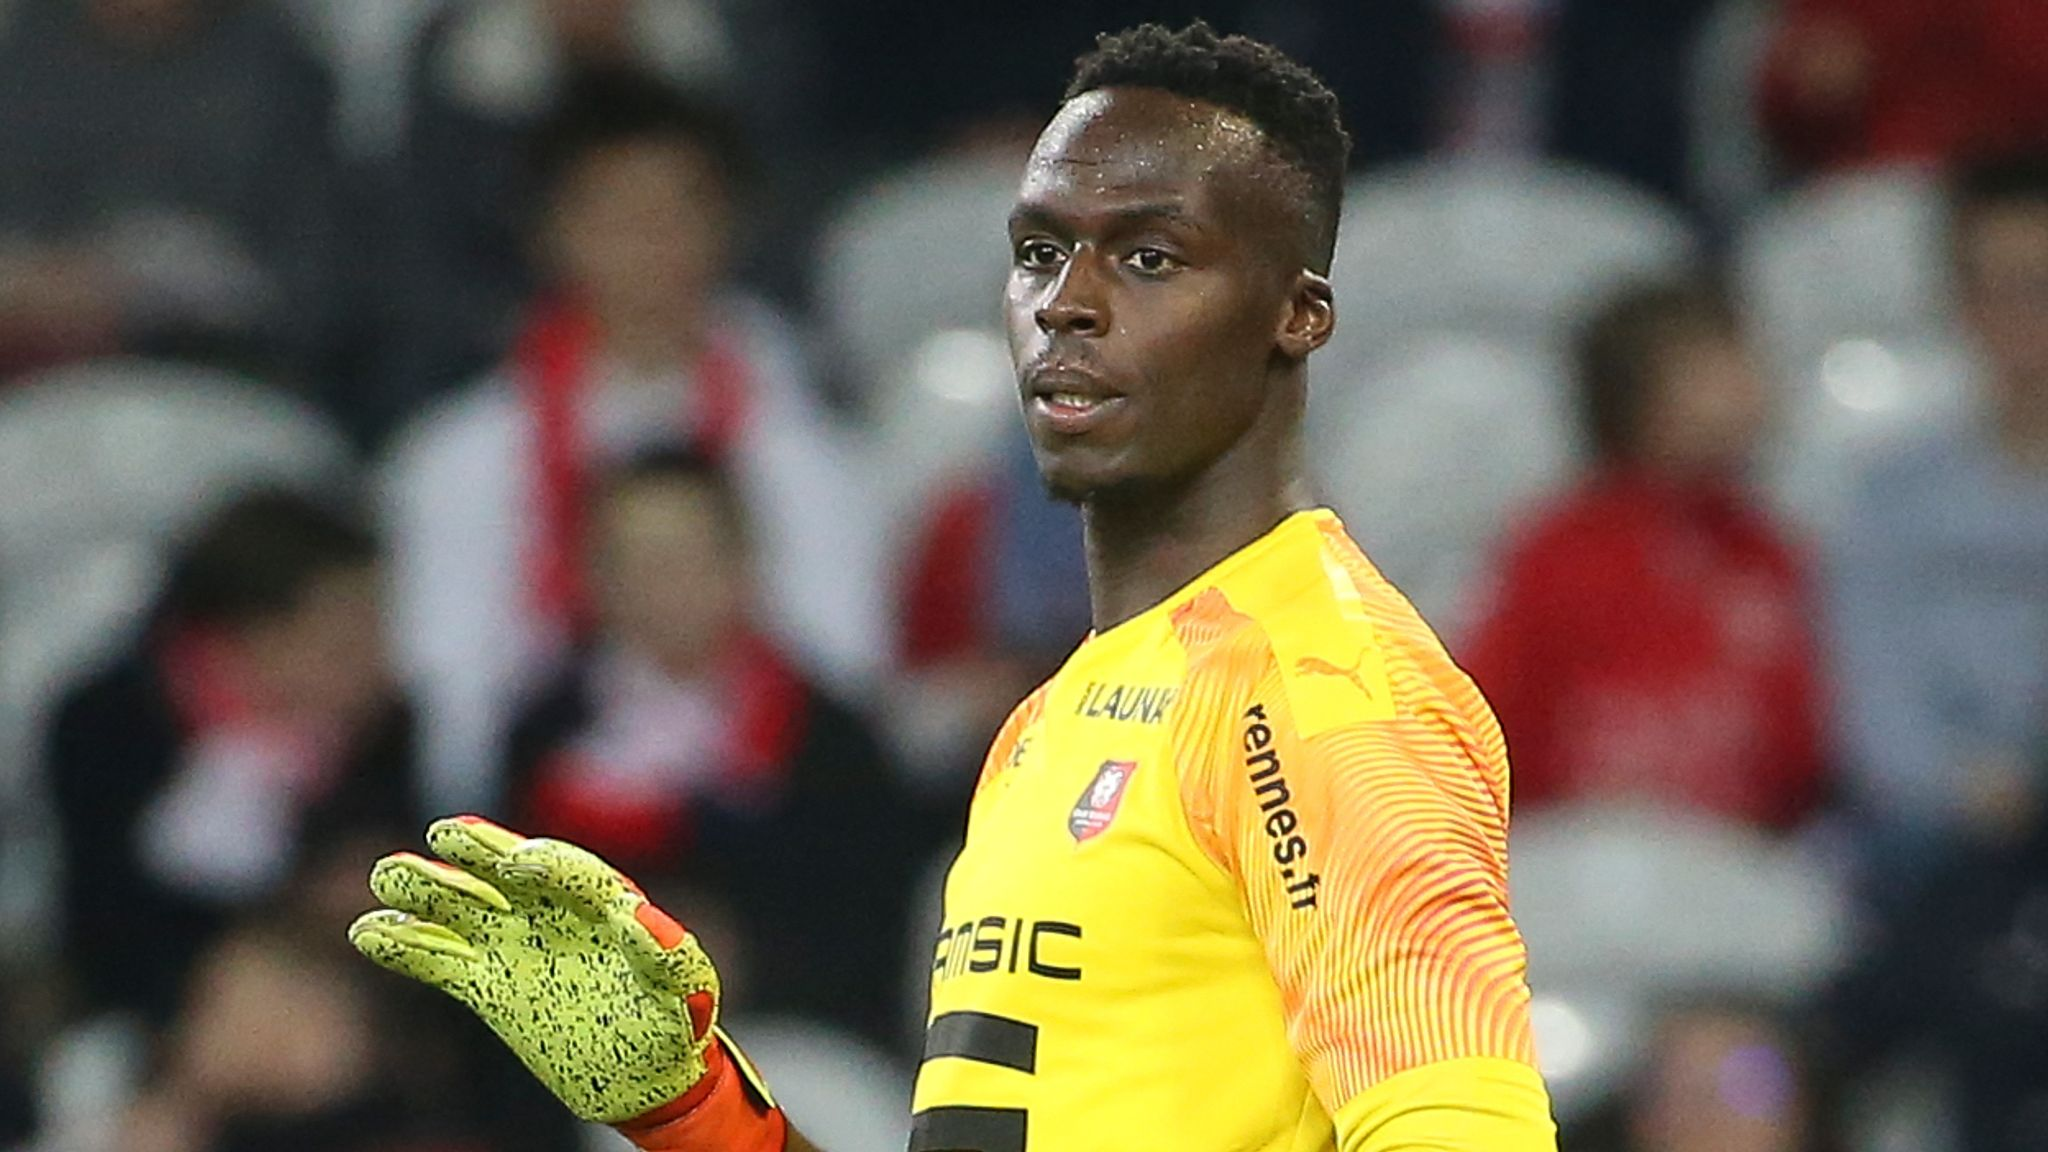 Chelsea has signed their New Primary GoalKeeper Rennes goalkeeper Edouard Mendy on a five-year deal. Edouard Mendy will replace Kepa at Chelsea.